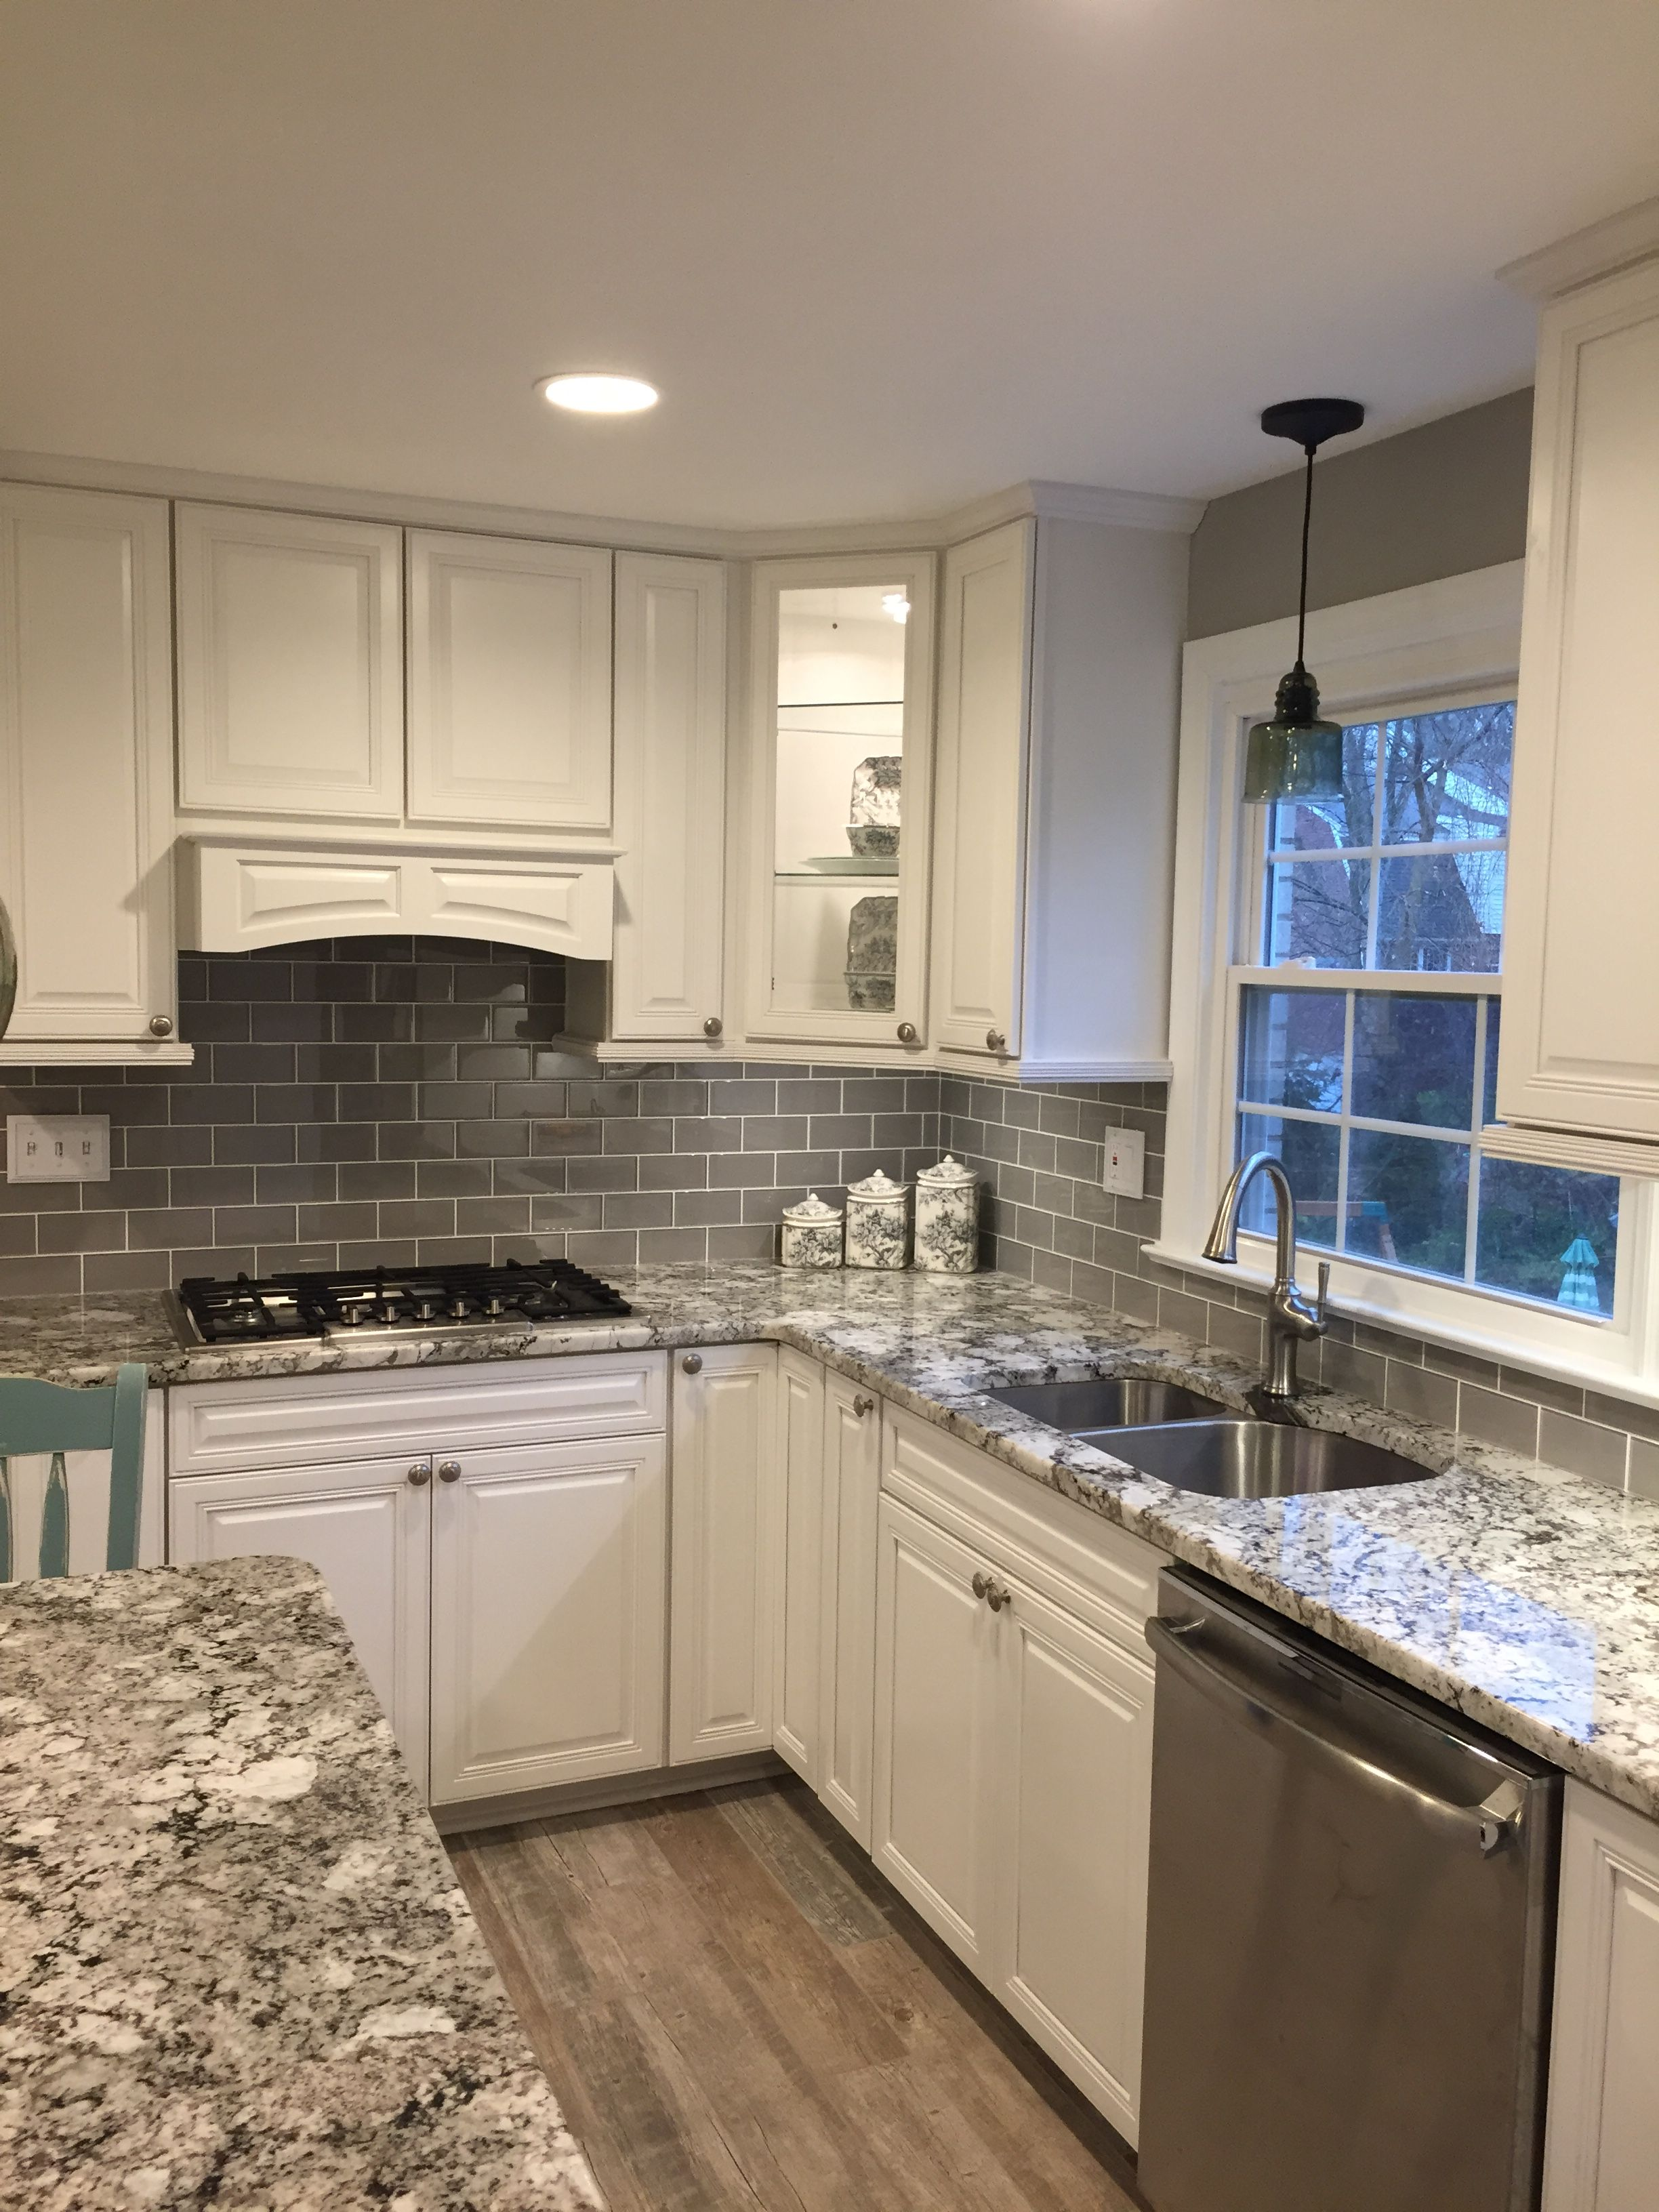 remodeled kitchen modern white gloss cabinets pin by leah on room idea remodel stunning using ice gray glass subway tile backsplash https www